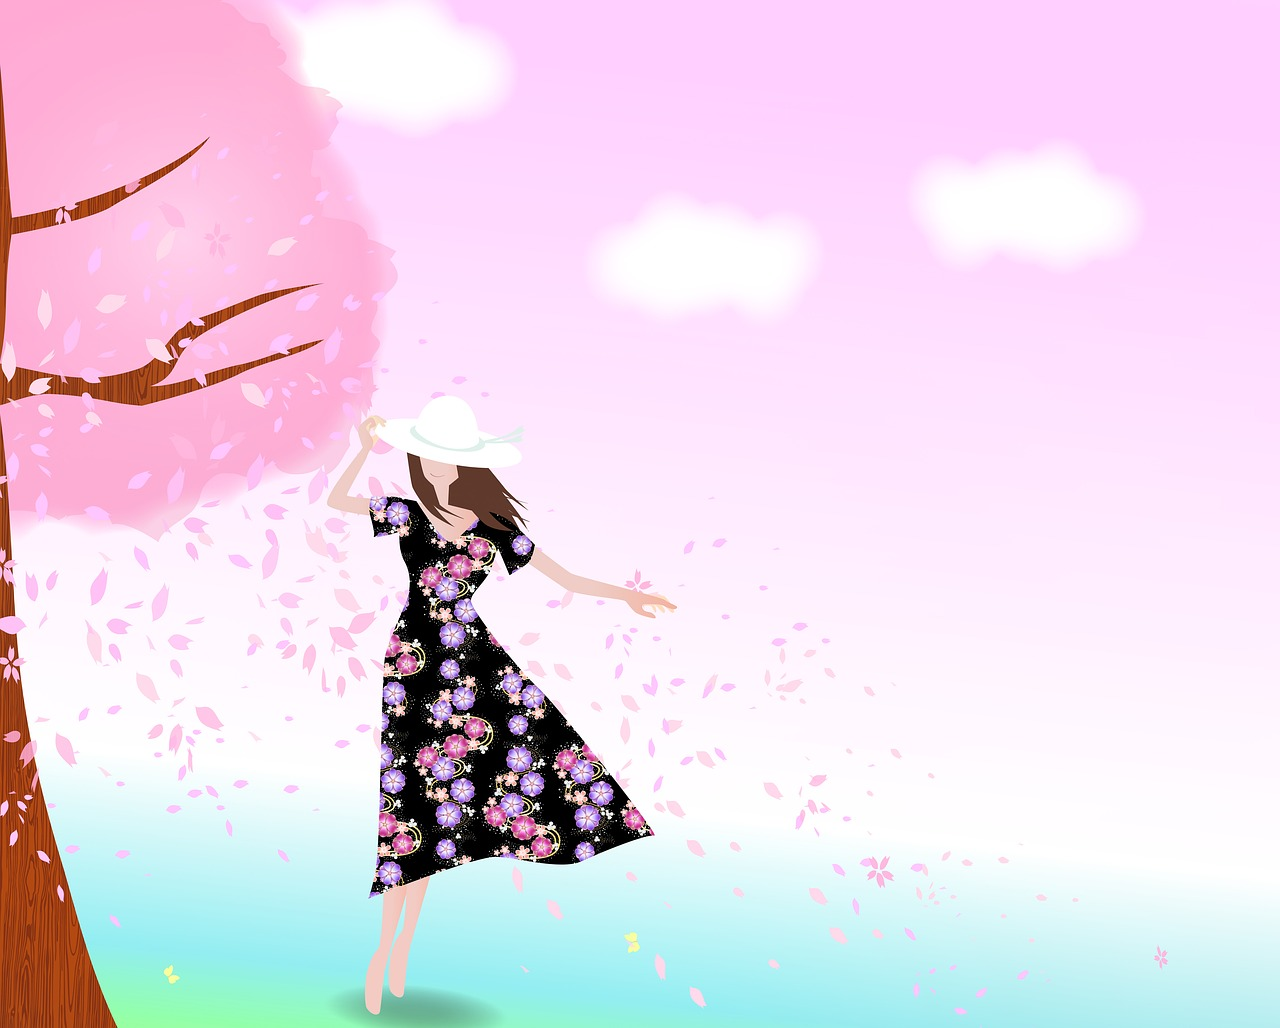 spring-background-4035405_1280.jpg